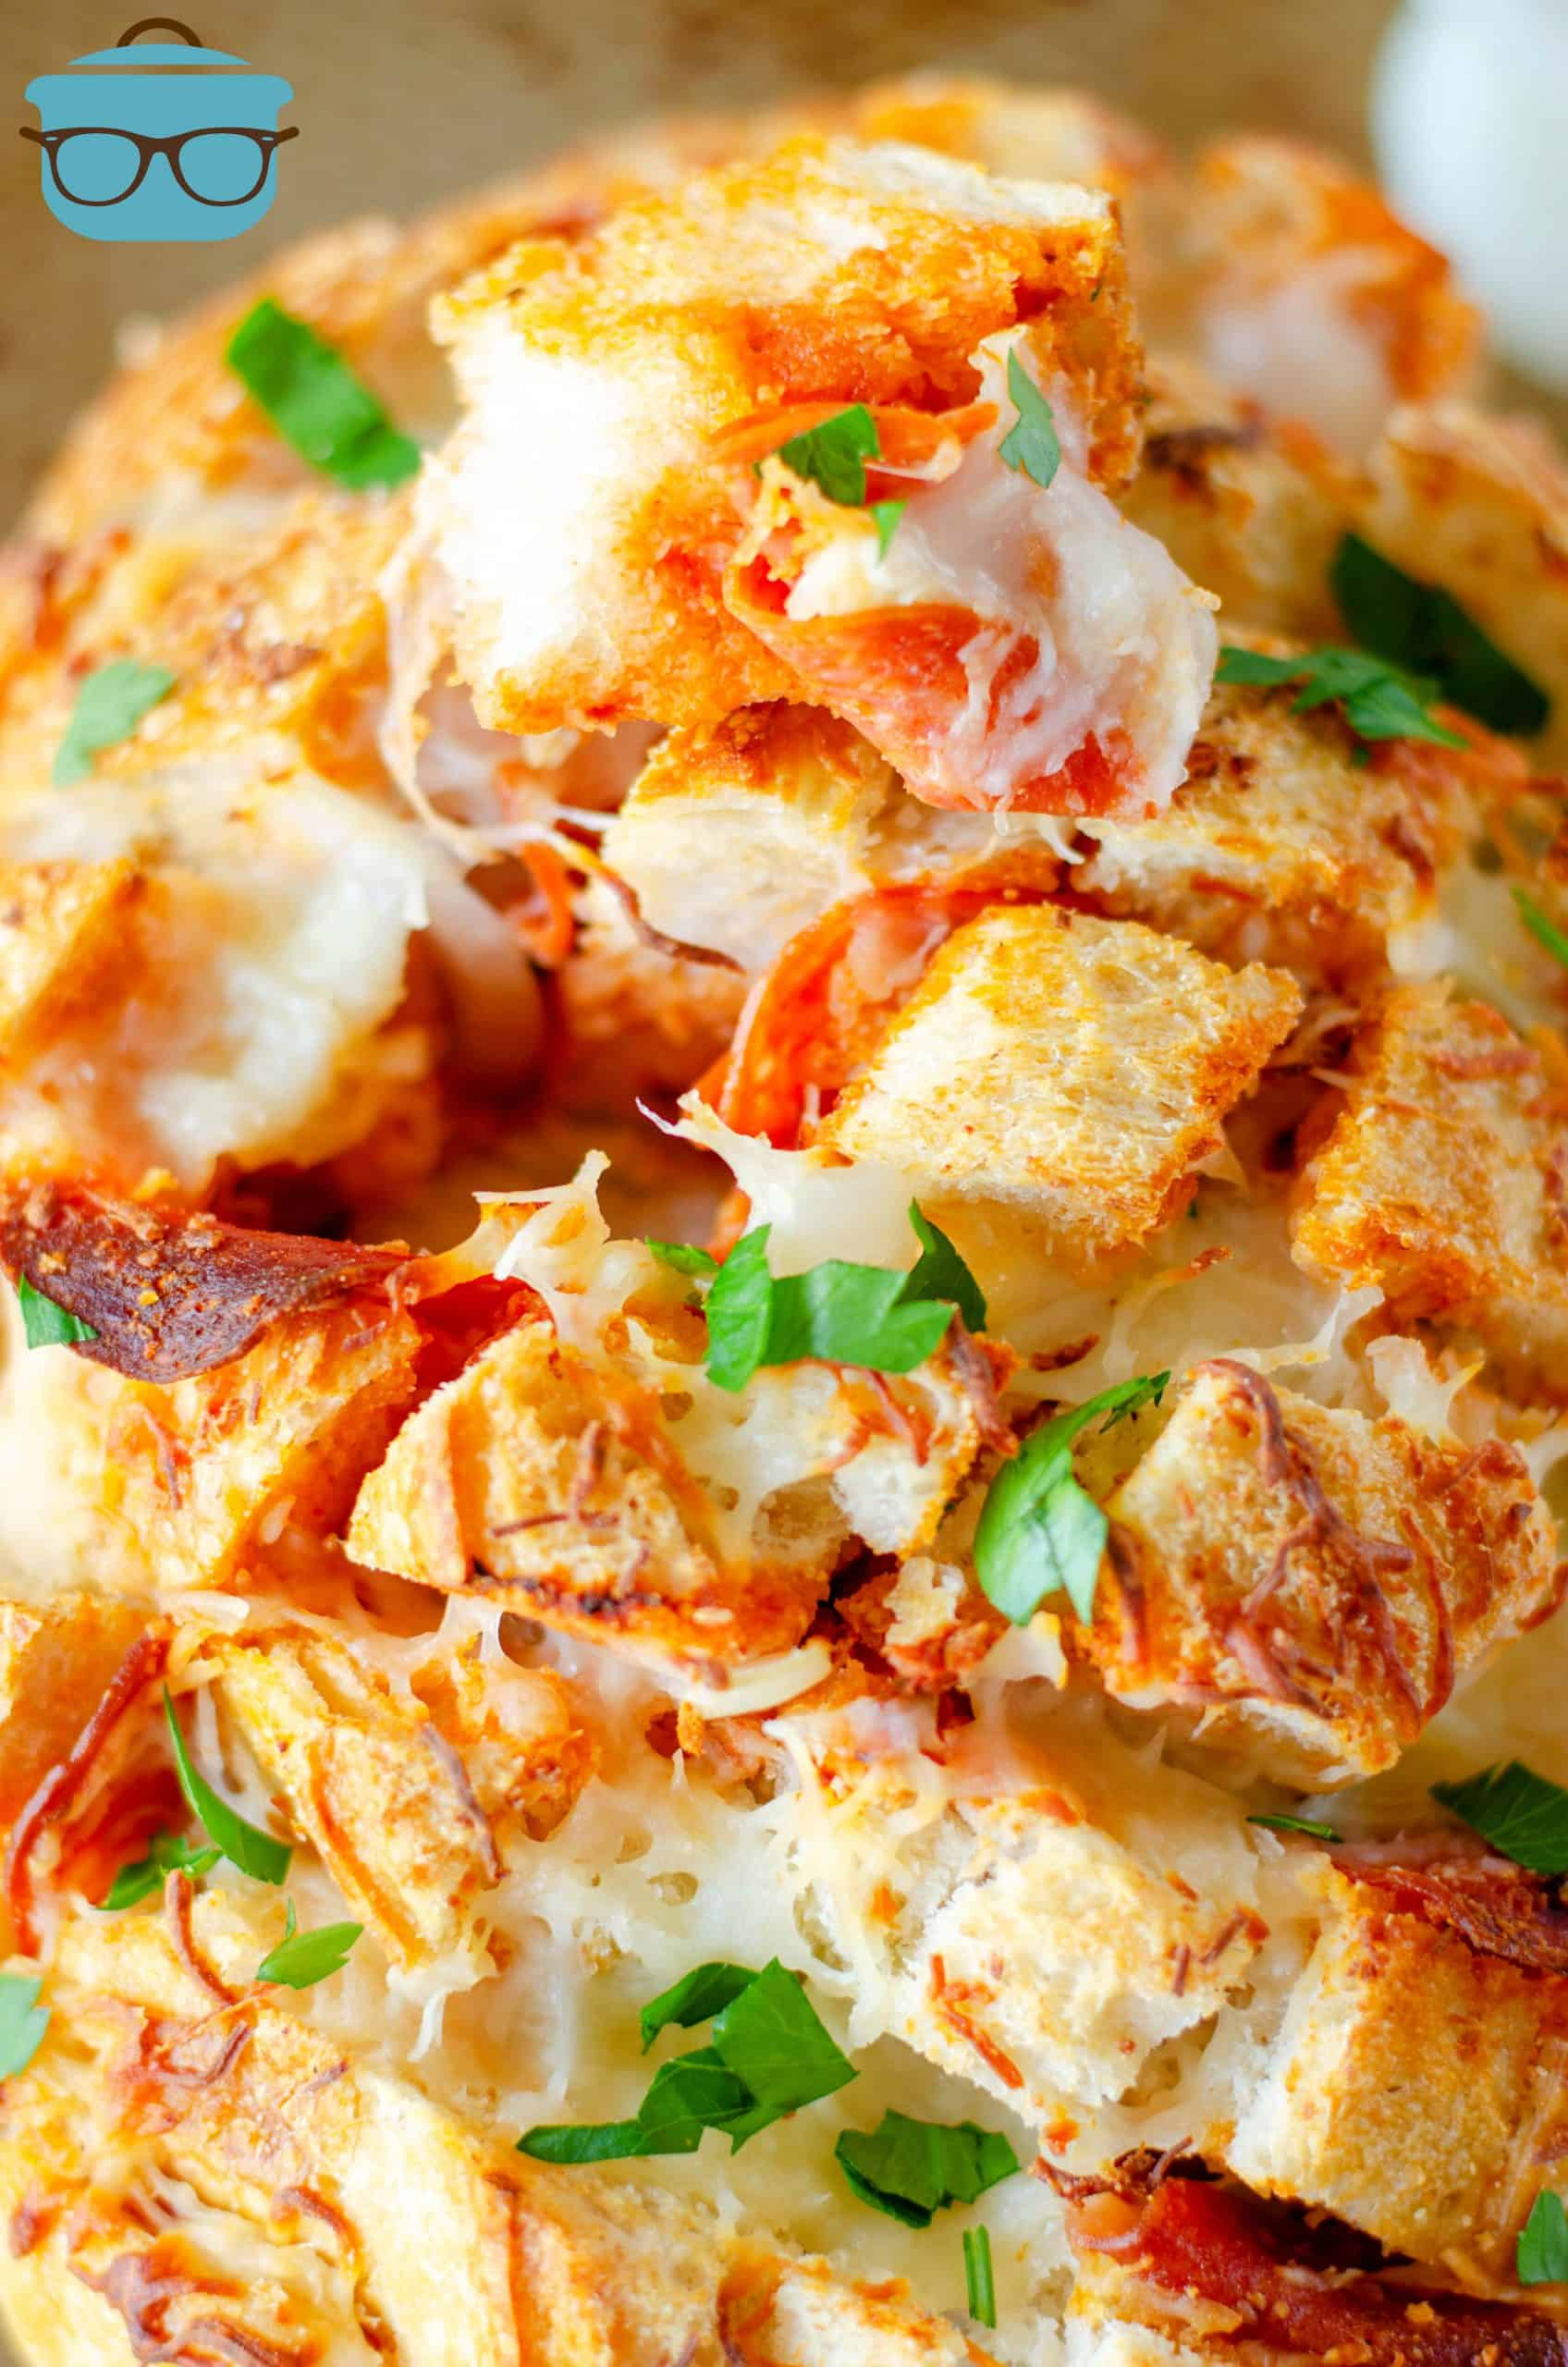 Cheesy pull apart bread with pizza sauce shown close up with chopped parsley.